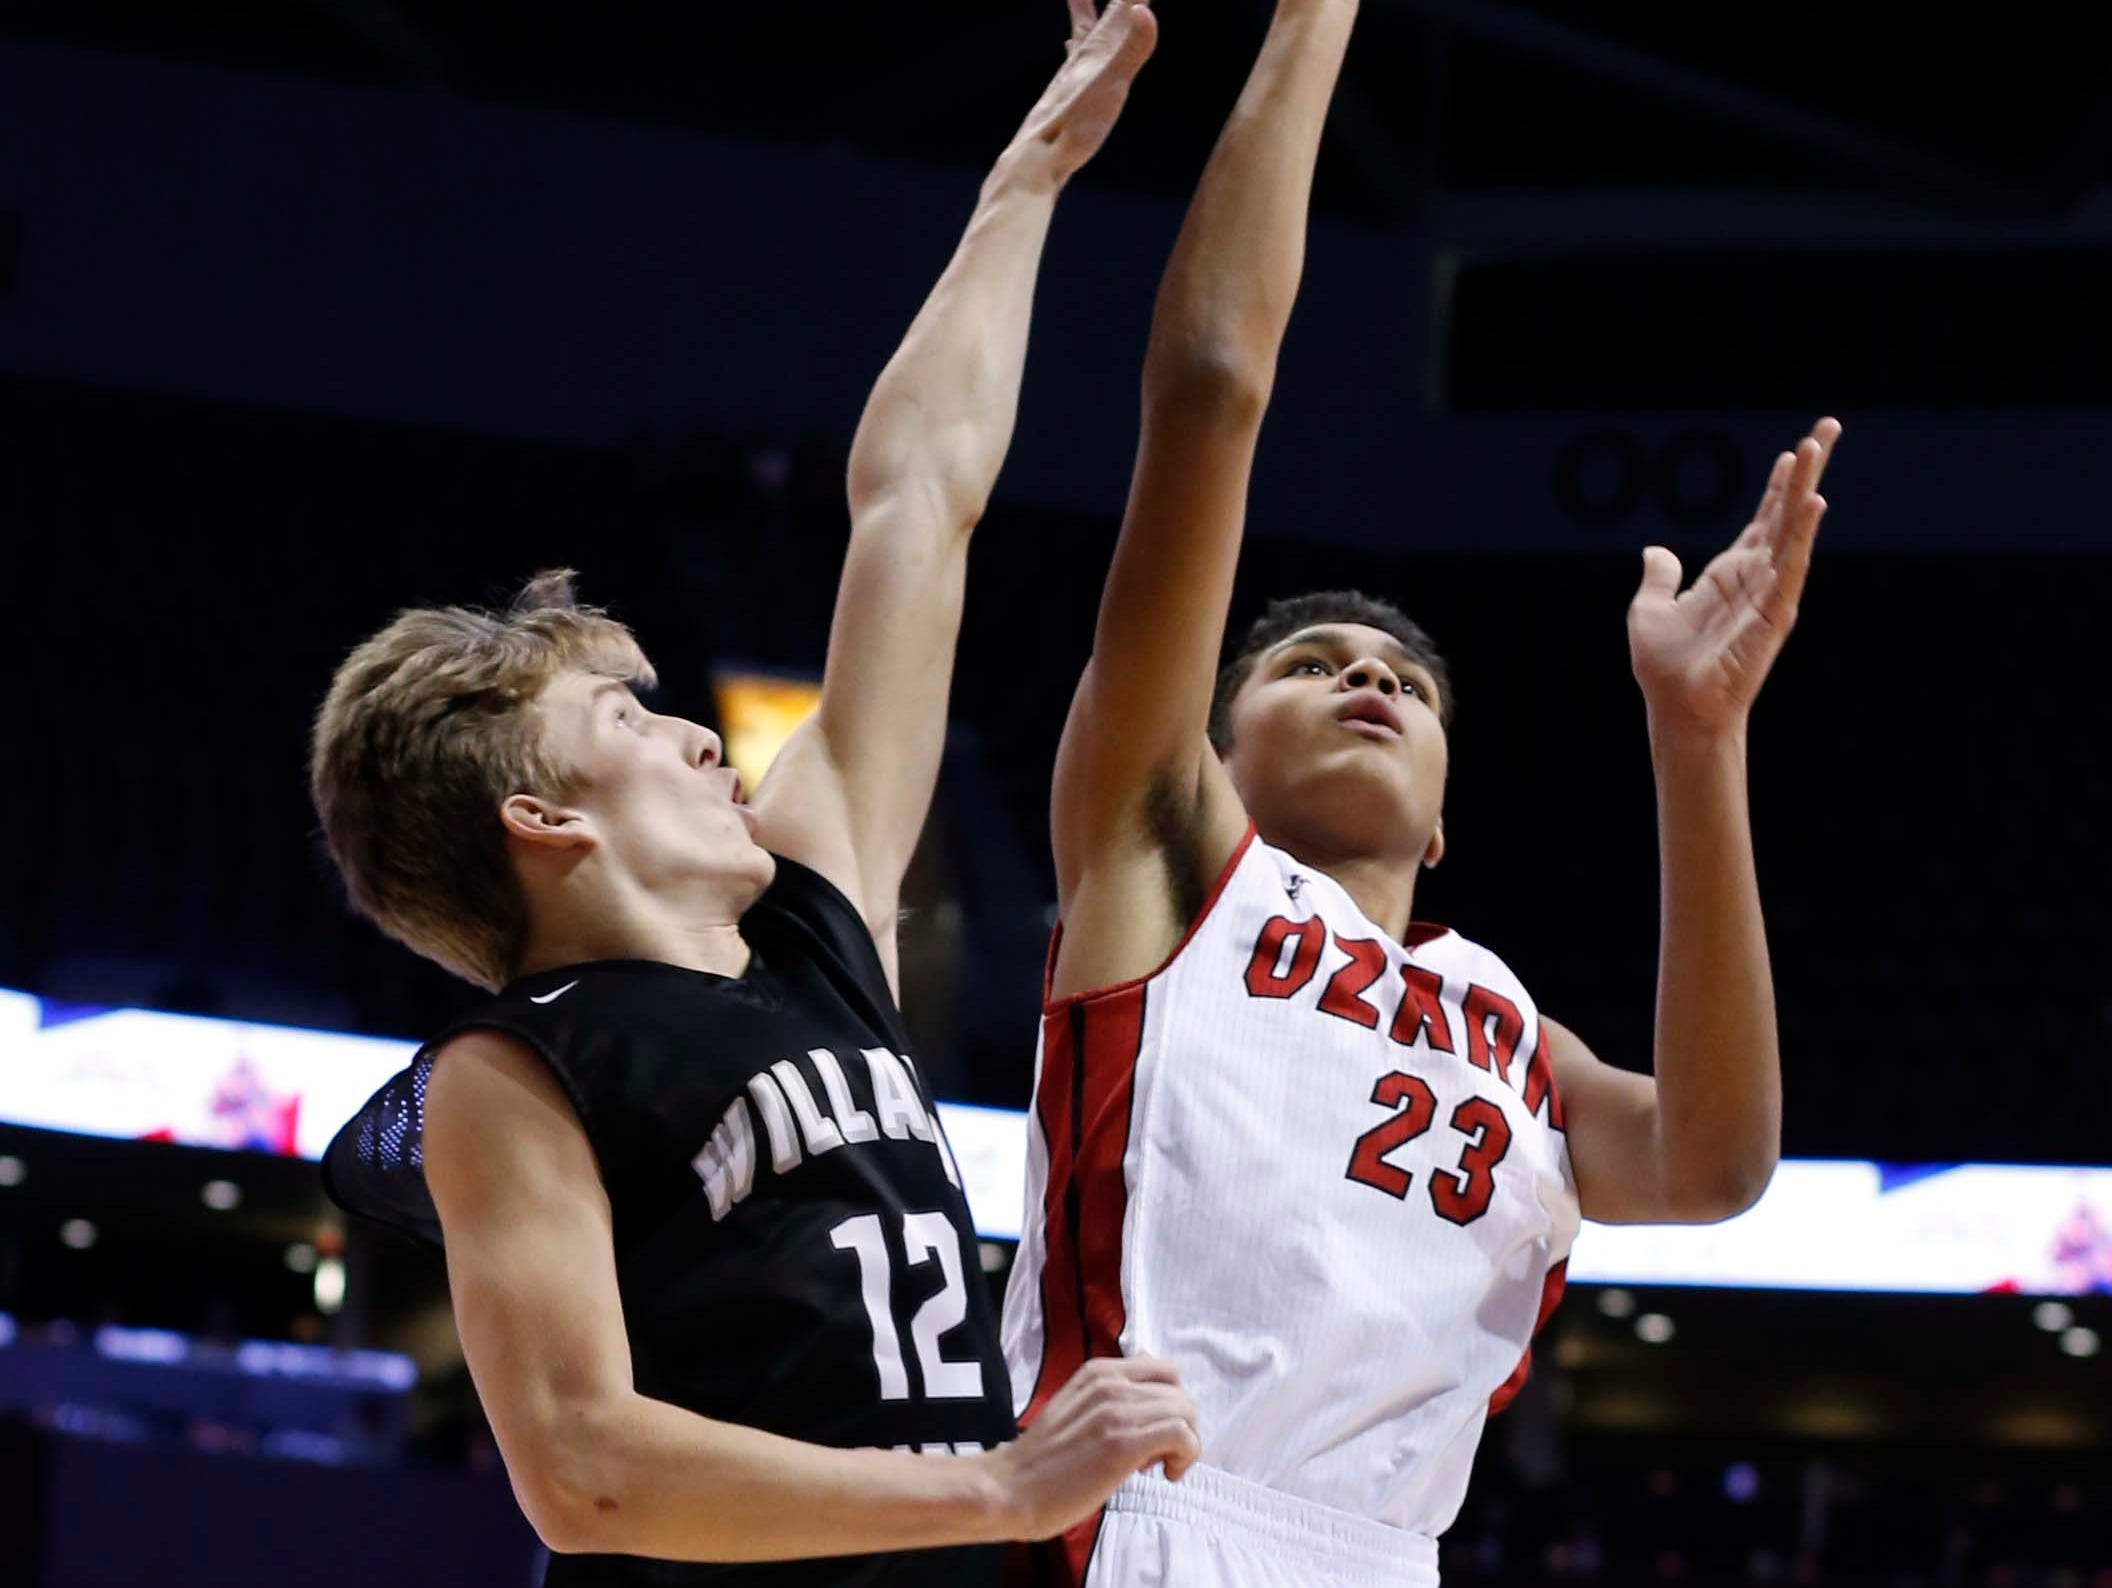 Ozark against Willard in the Gold division final at JQH Arena on December 29, 2016.